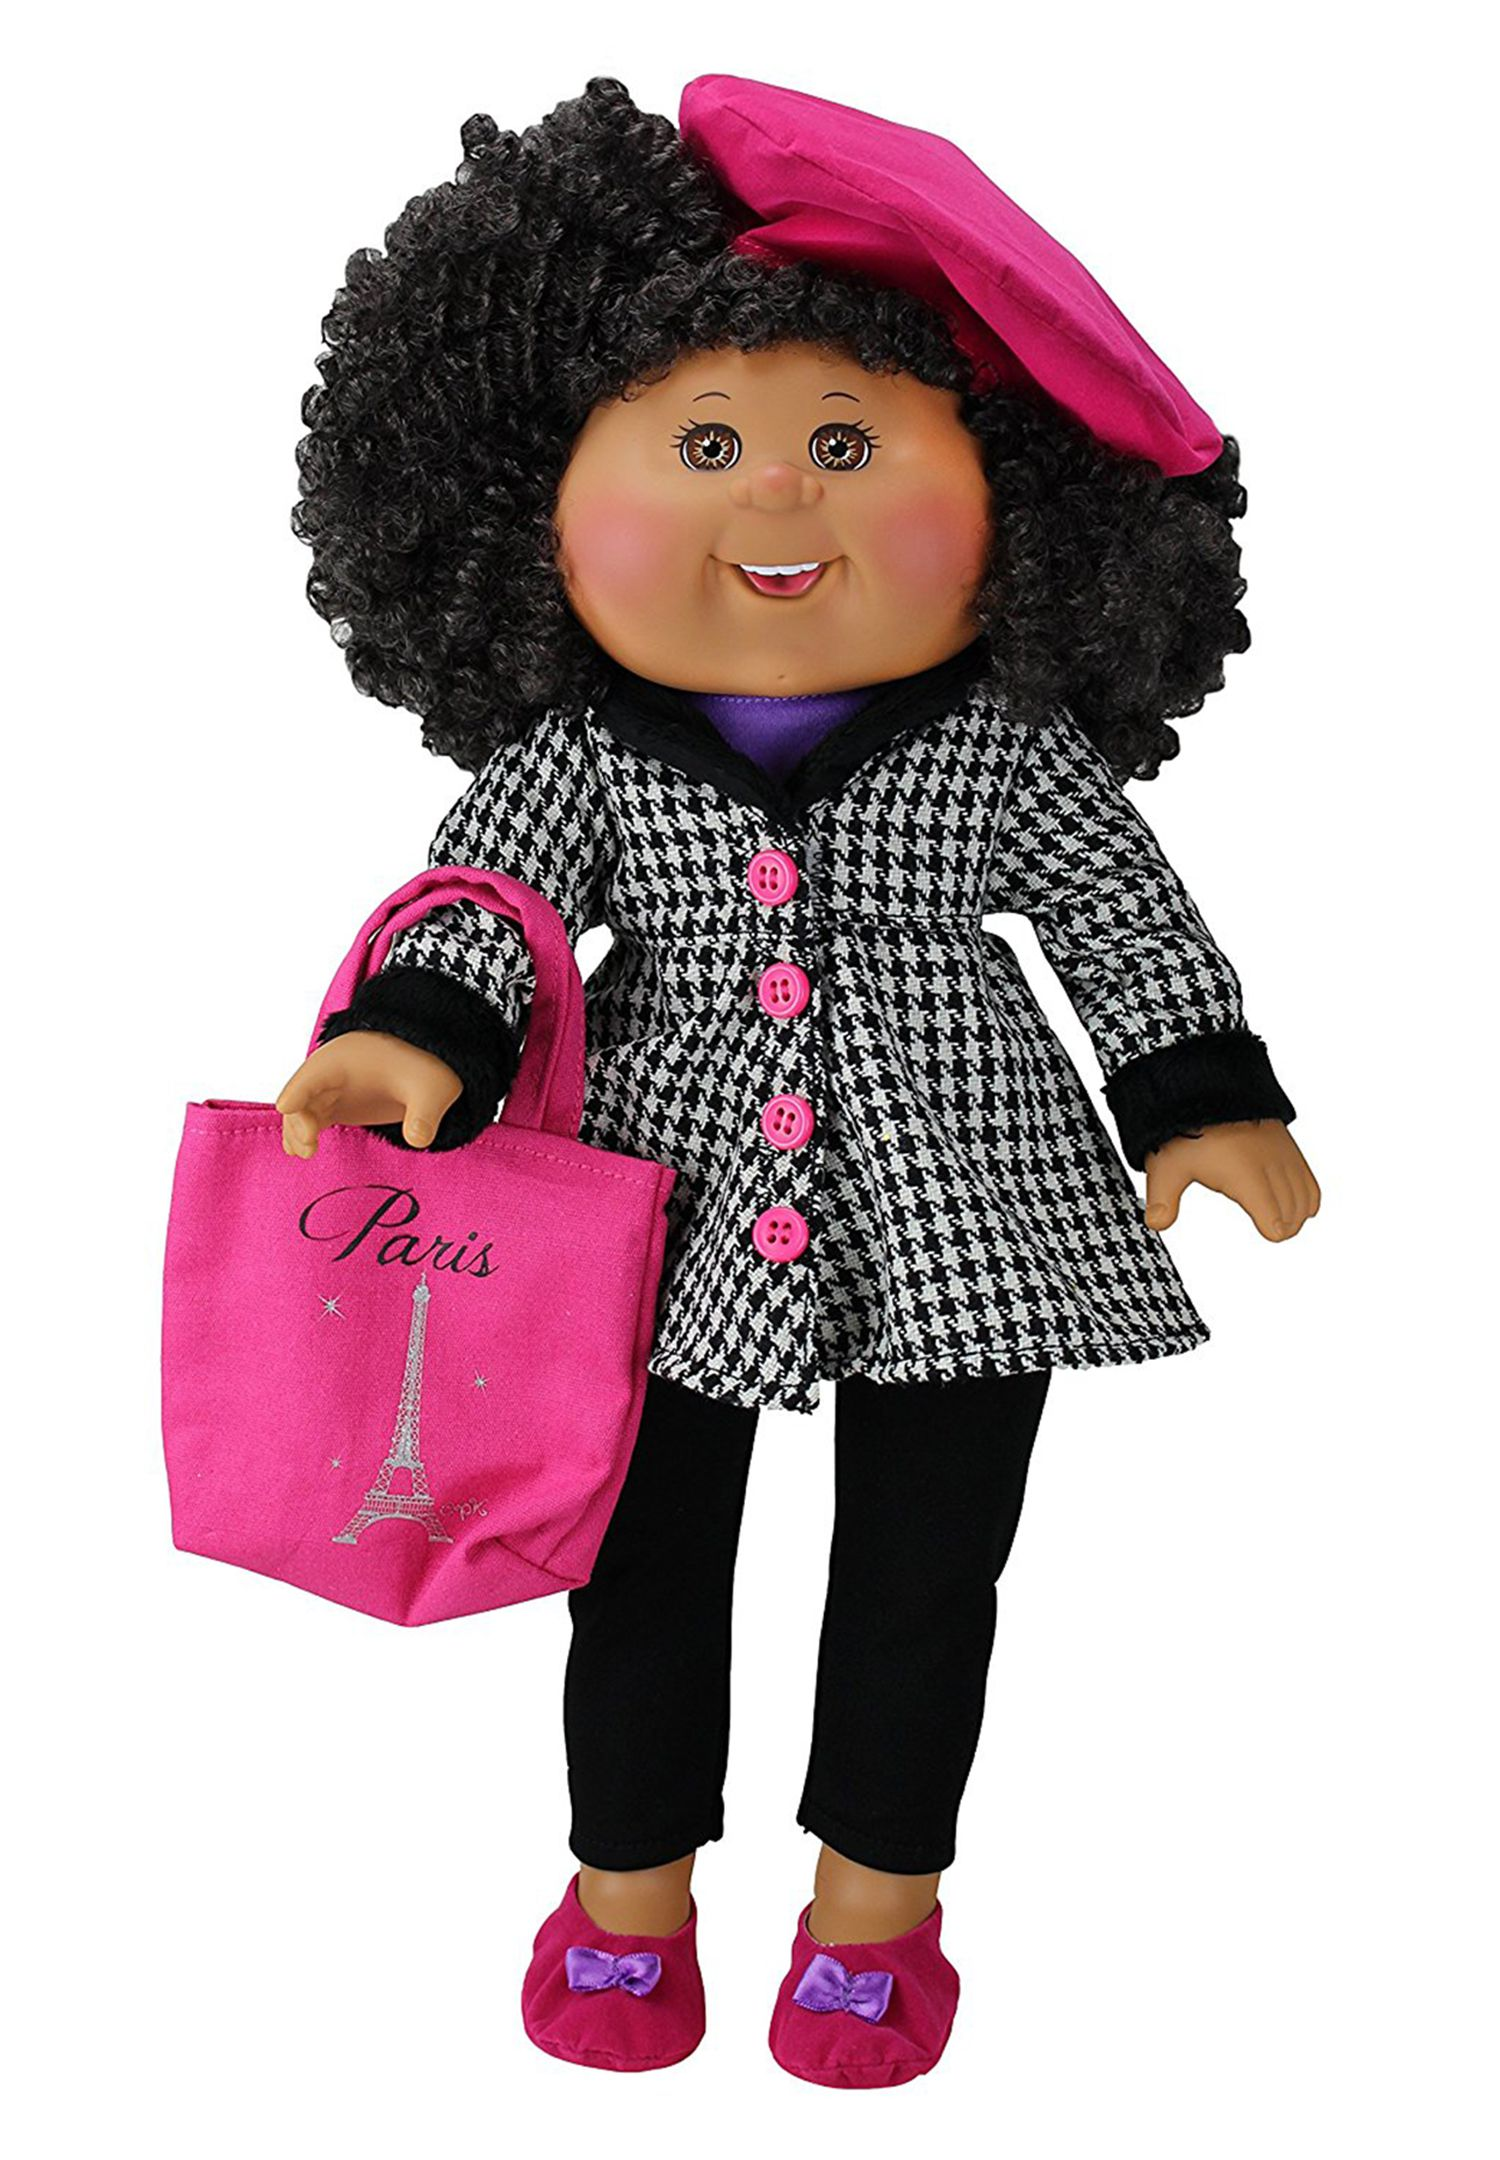 Doll Profile All About Cabbage Patch Kids